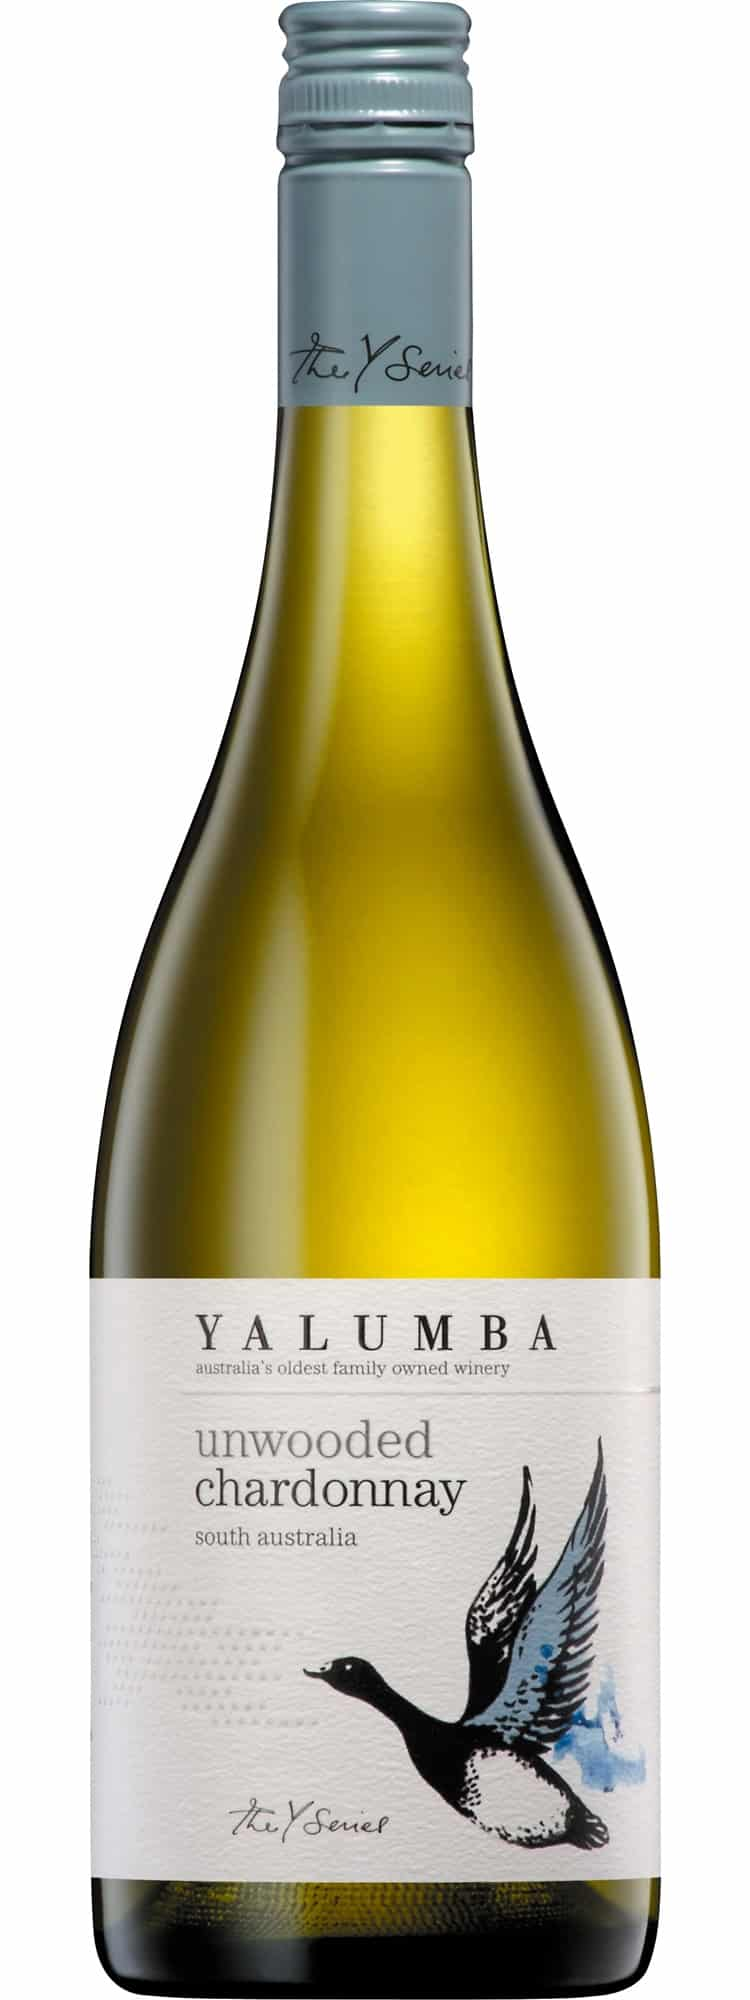 Yalumba Y Series Unwooded Chardonnay 13 2013 75cl